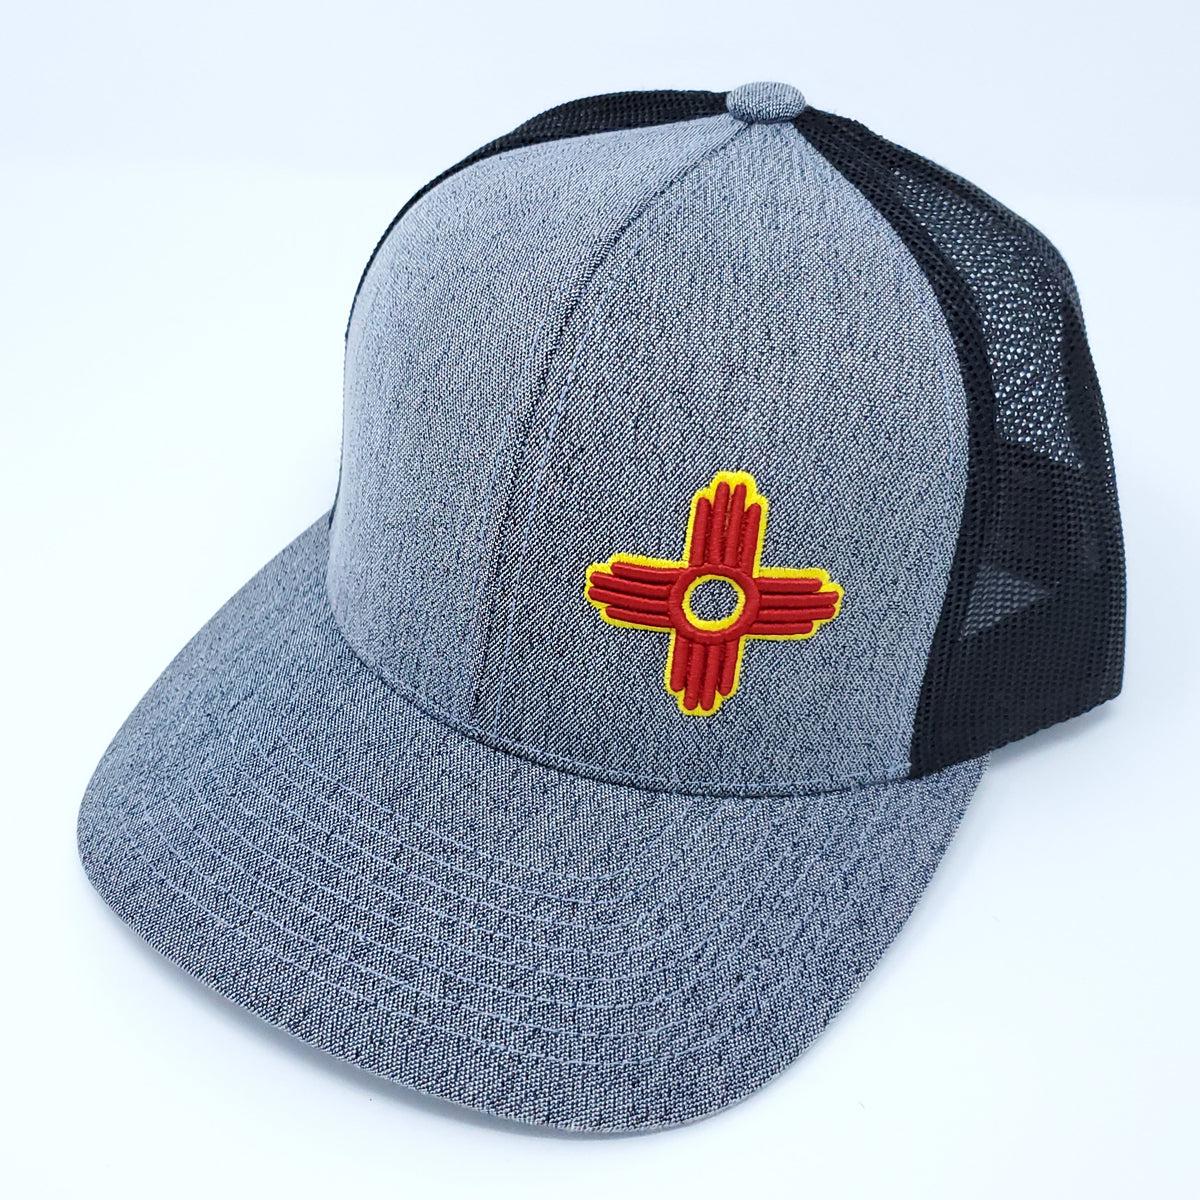 Heather Grey Zia Embroidered Trucker Style Snapback - Ragged Apparel Screen Printing and Signs - www.nmshirts.com